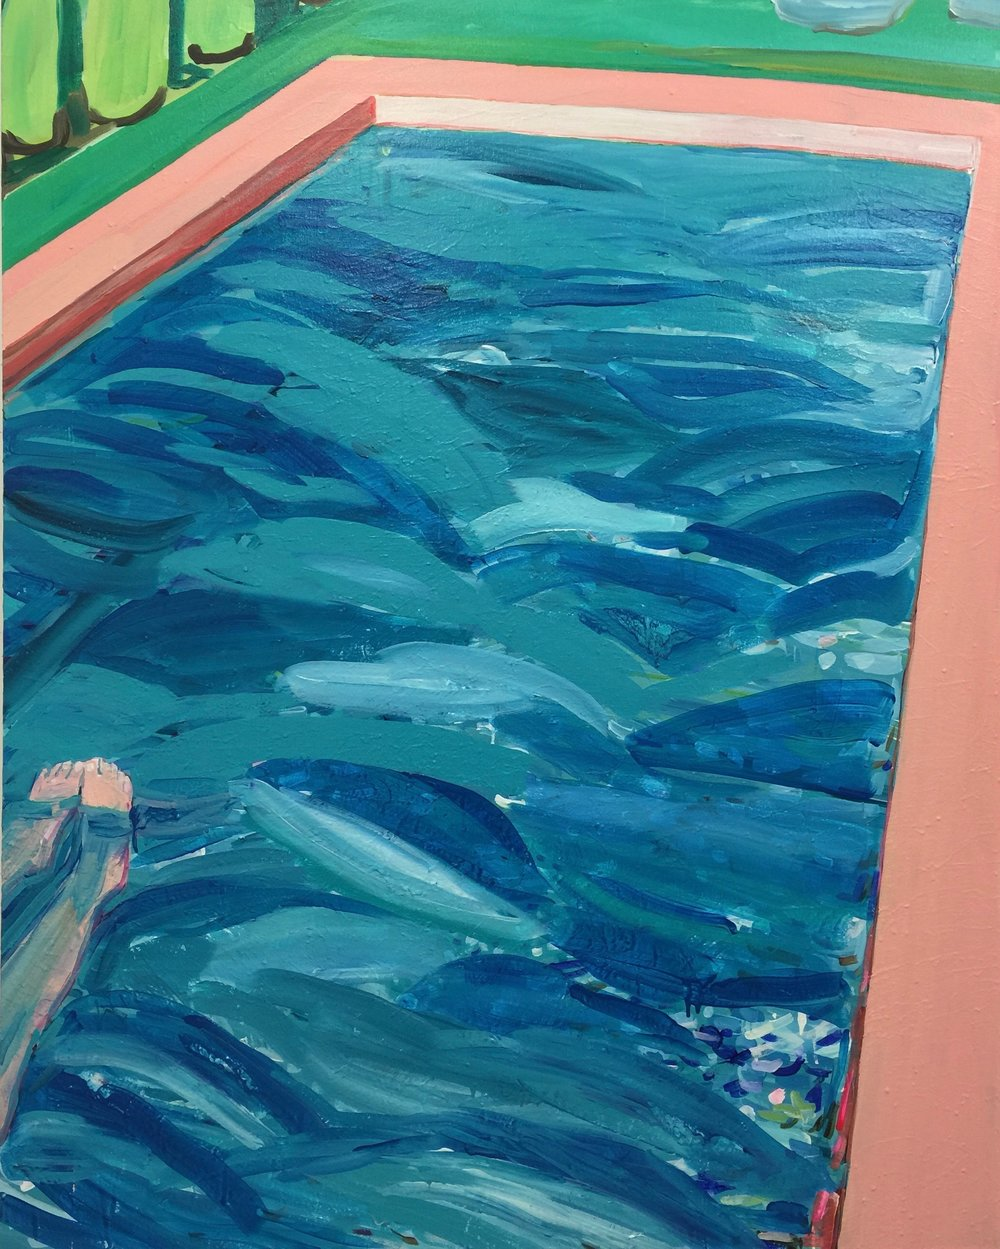 "Pool with Mom Feet (2017), Acrylic on canvas, 60"" x 48"""